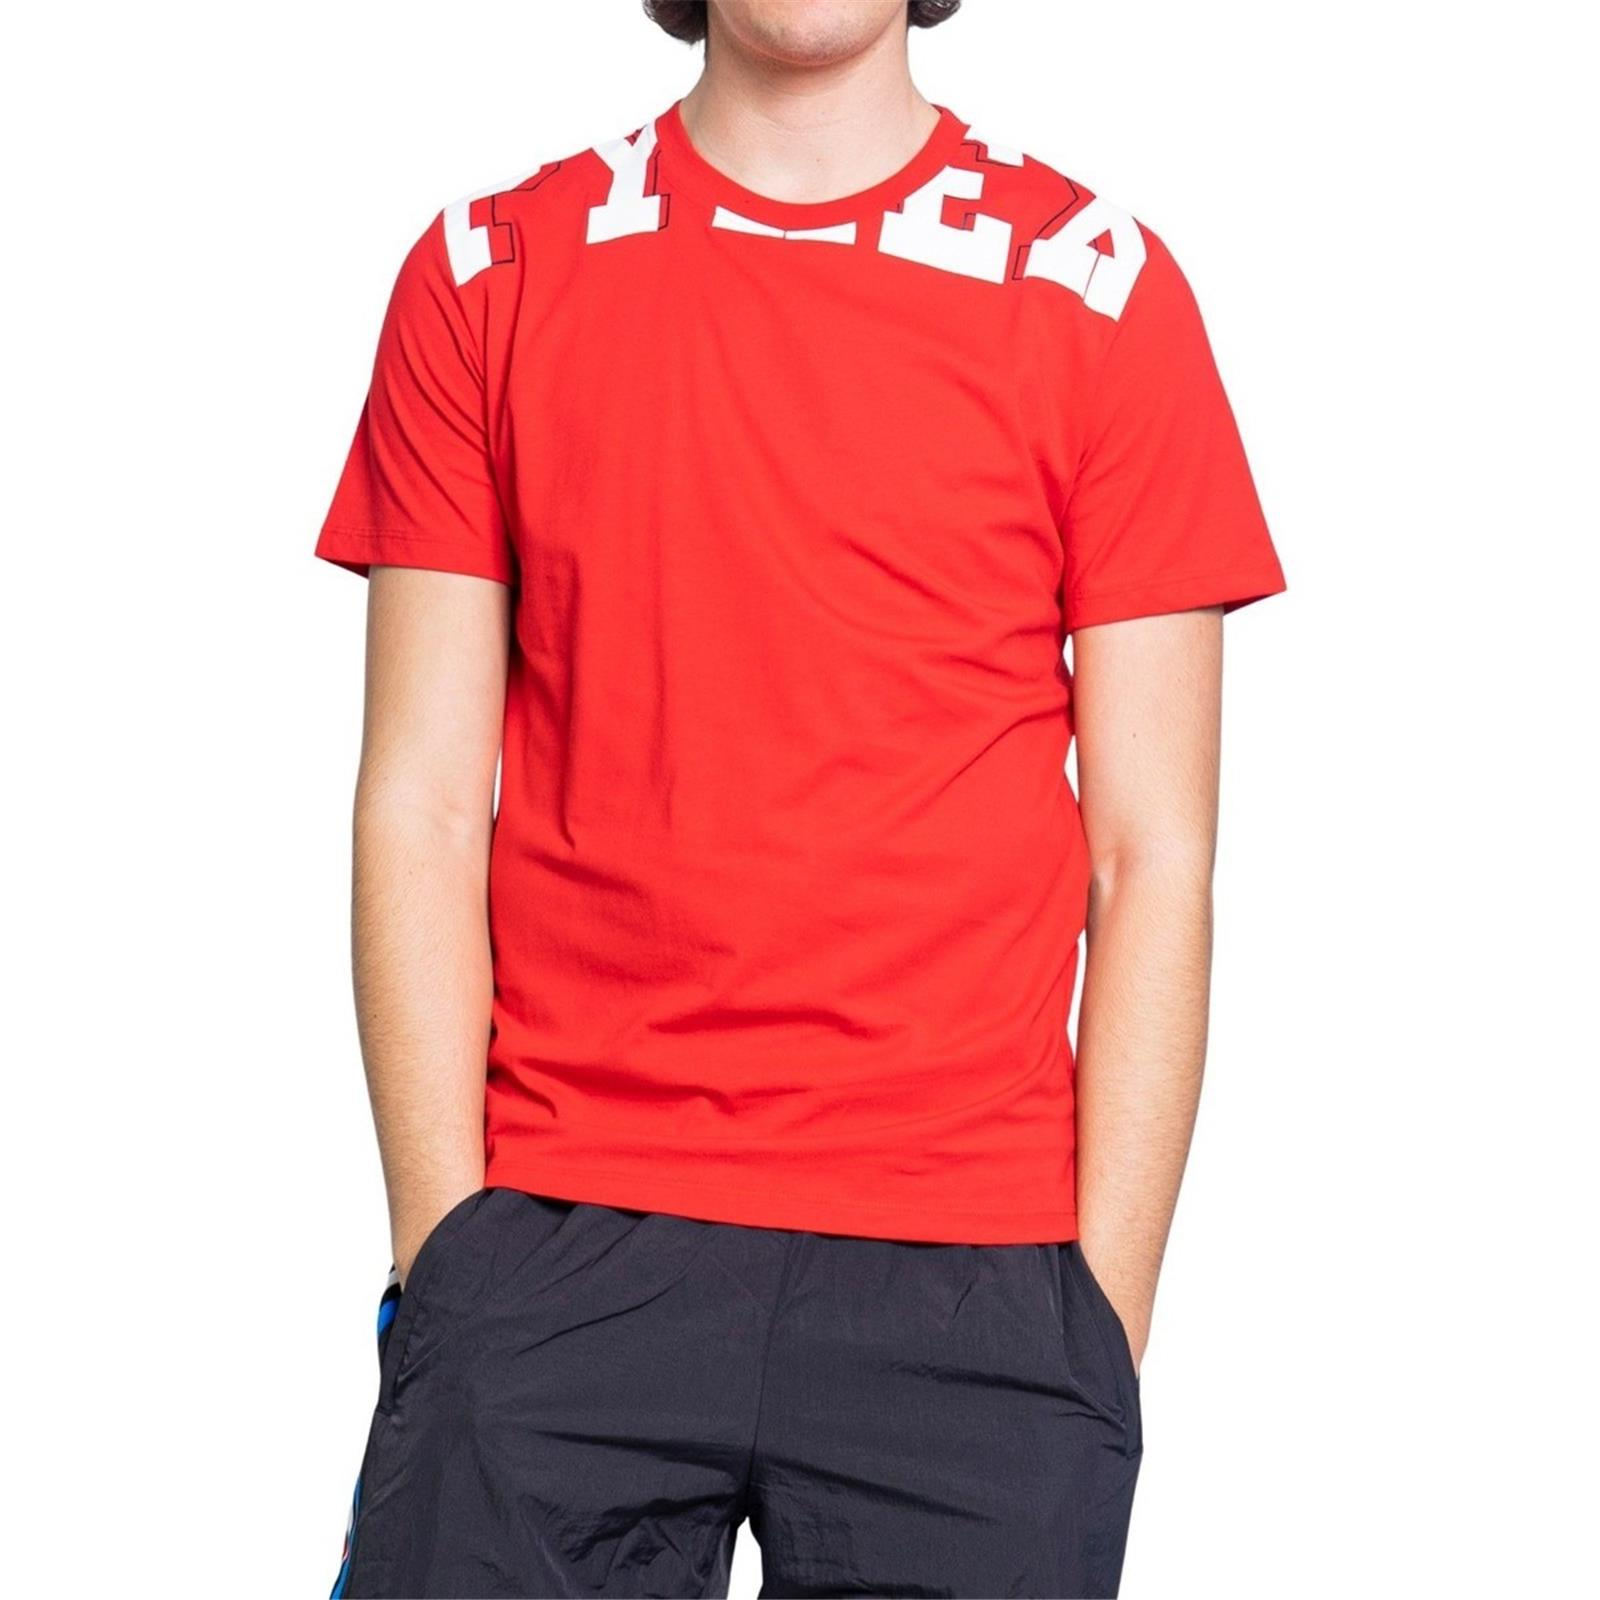 PYREX T-shirt uomo in jersey 100% cotone (L - ROSSO)